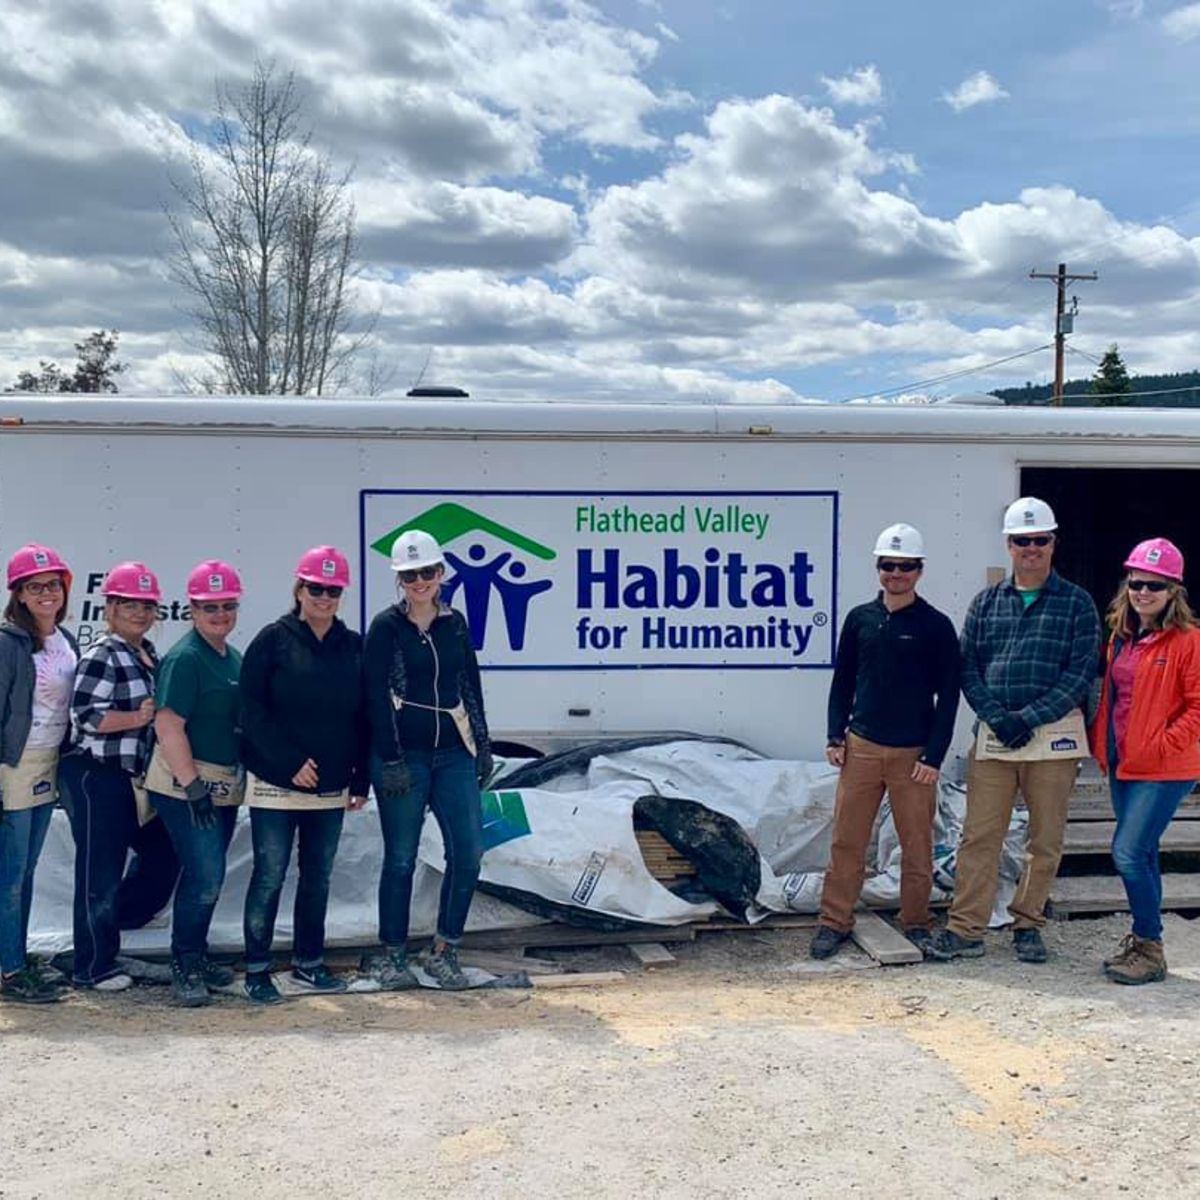 Flathead Valley, Habitat for Humanity group picture